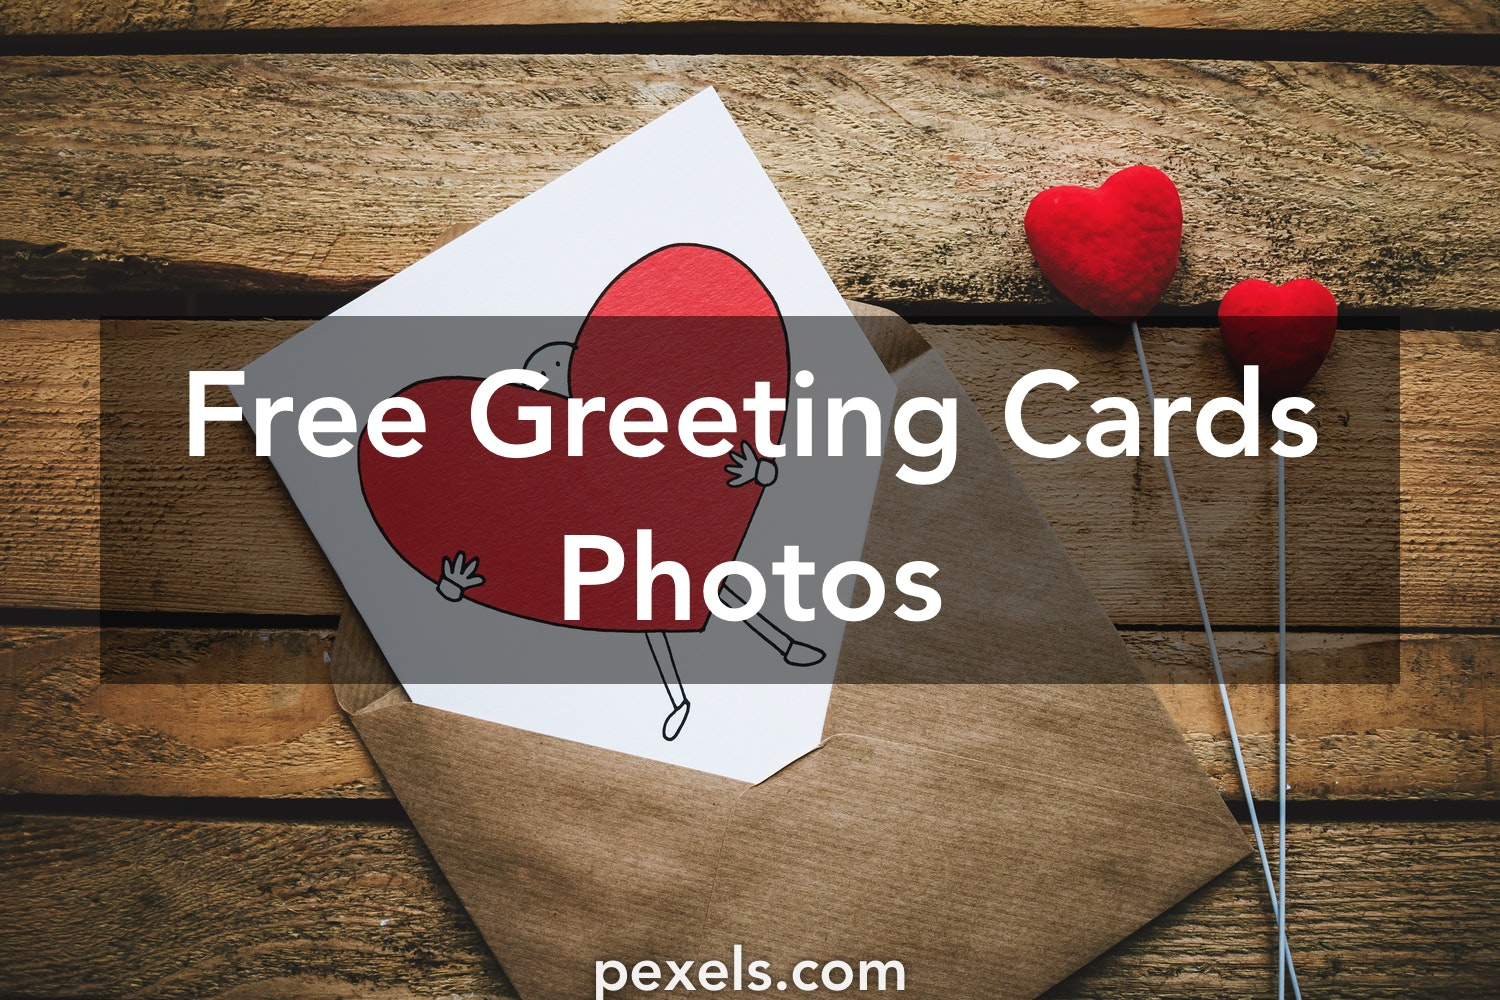 250 Interesting Greeting Cards Photos Pexels Free Stock Photos